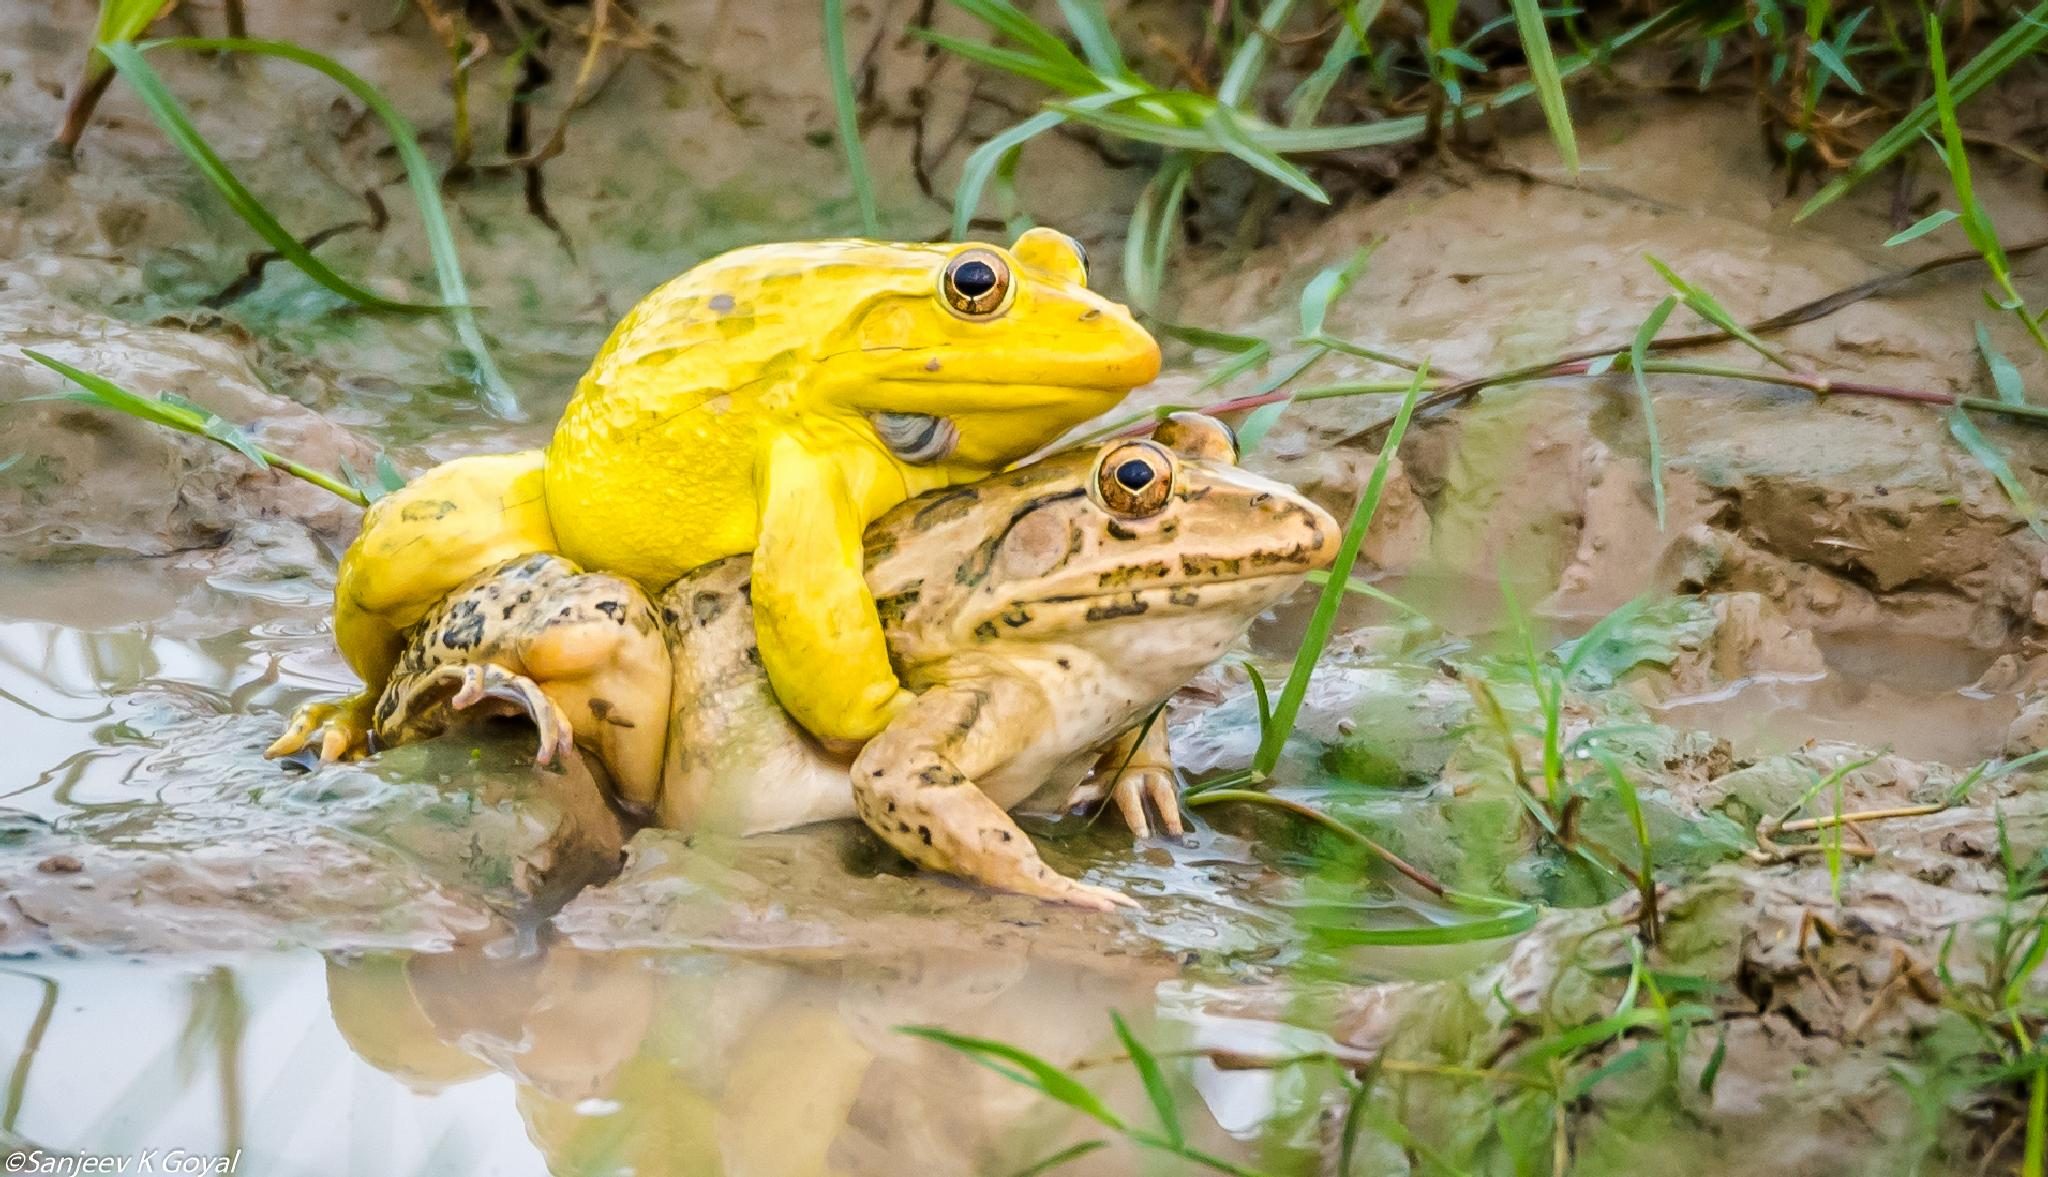 Indian Bull frog by sanjeev.k.goyal.10